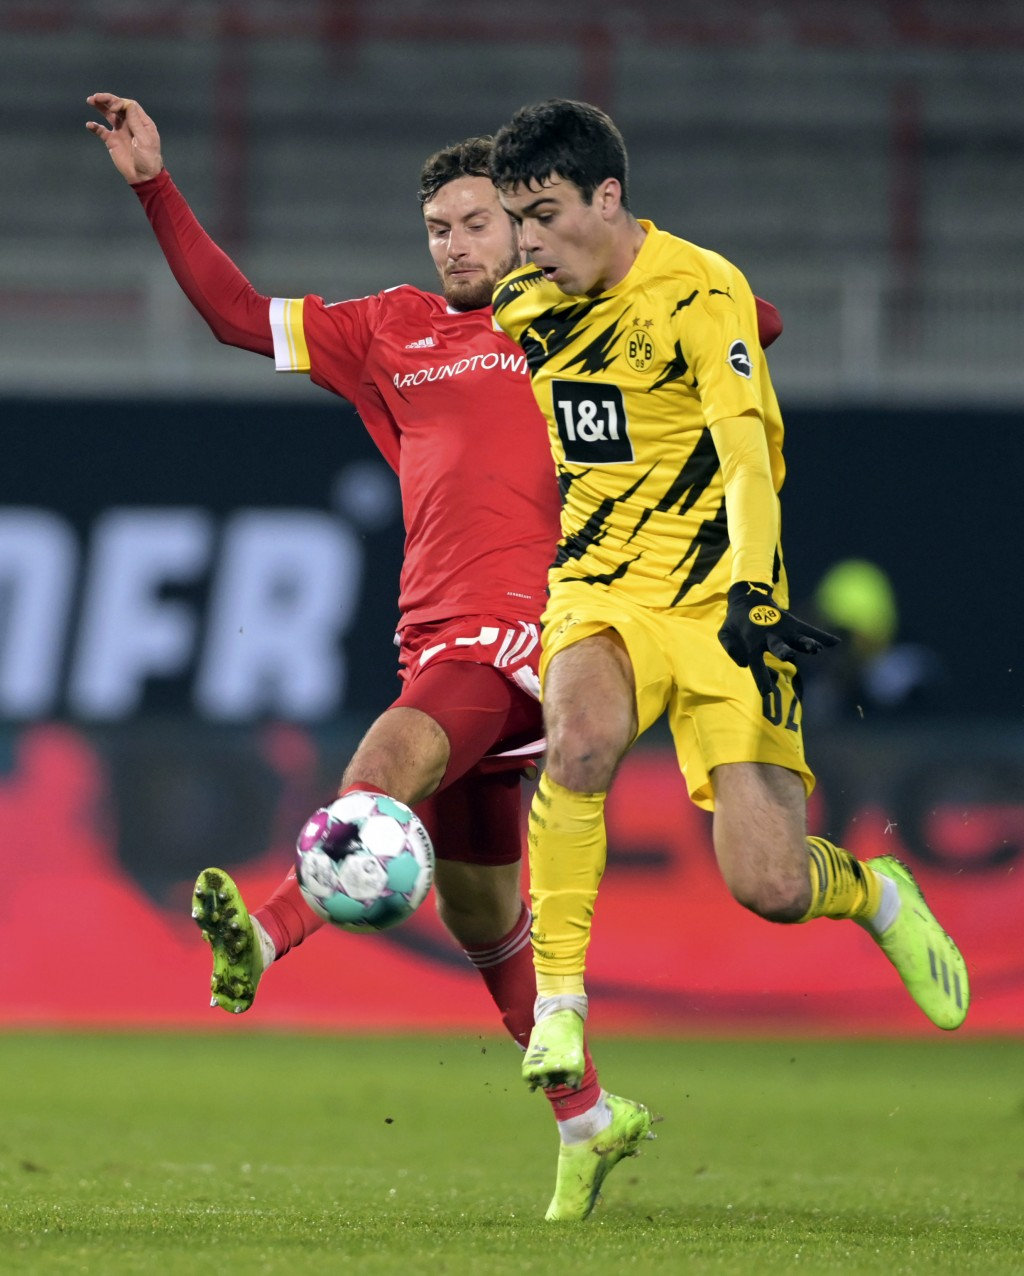 Union's Christopher Lenz, left, in action against Dortmund's Giovanni Reyna during the German Bundesliga soccer match between 1. FC Union Berlin and B...